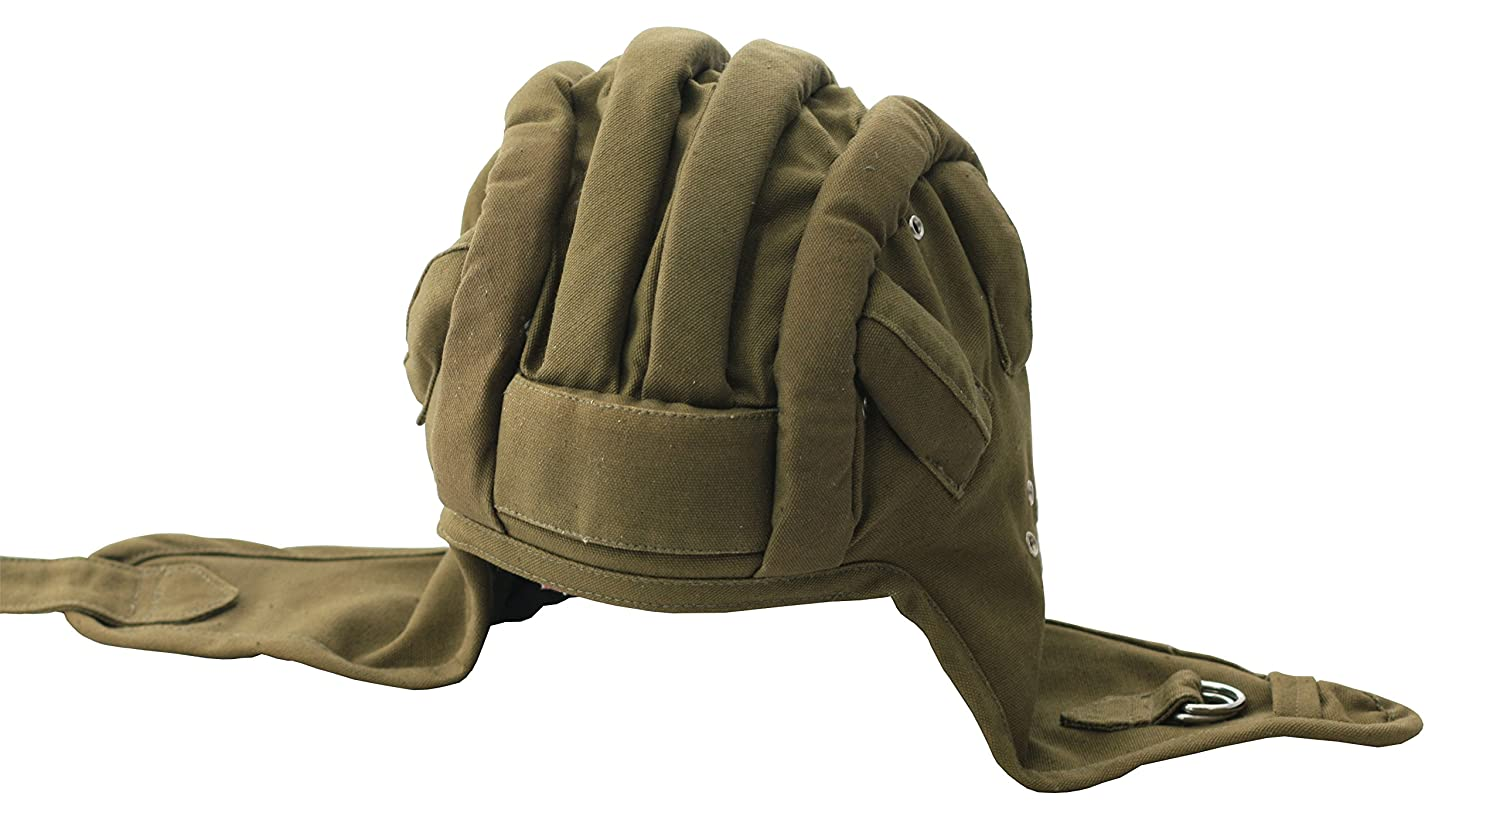 Soviet Russian Army VDV paratroopers jumping cap size 58